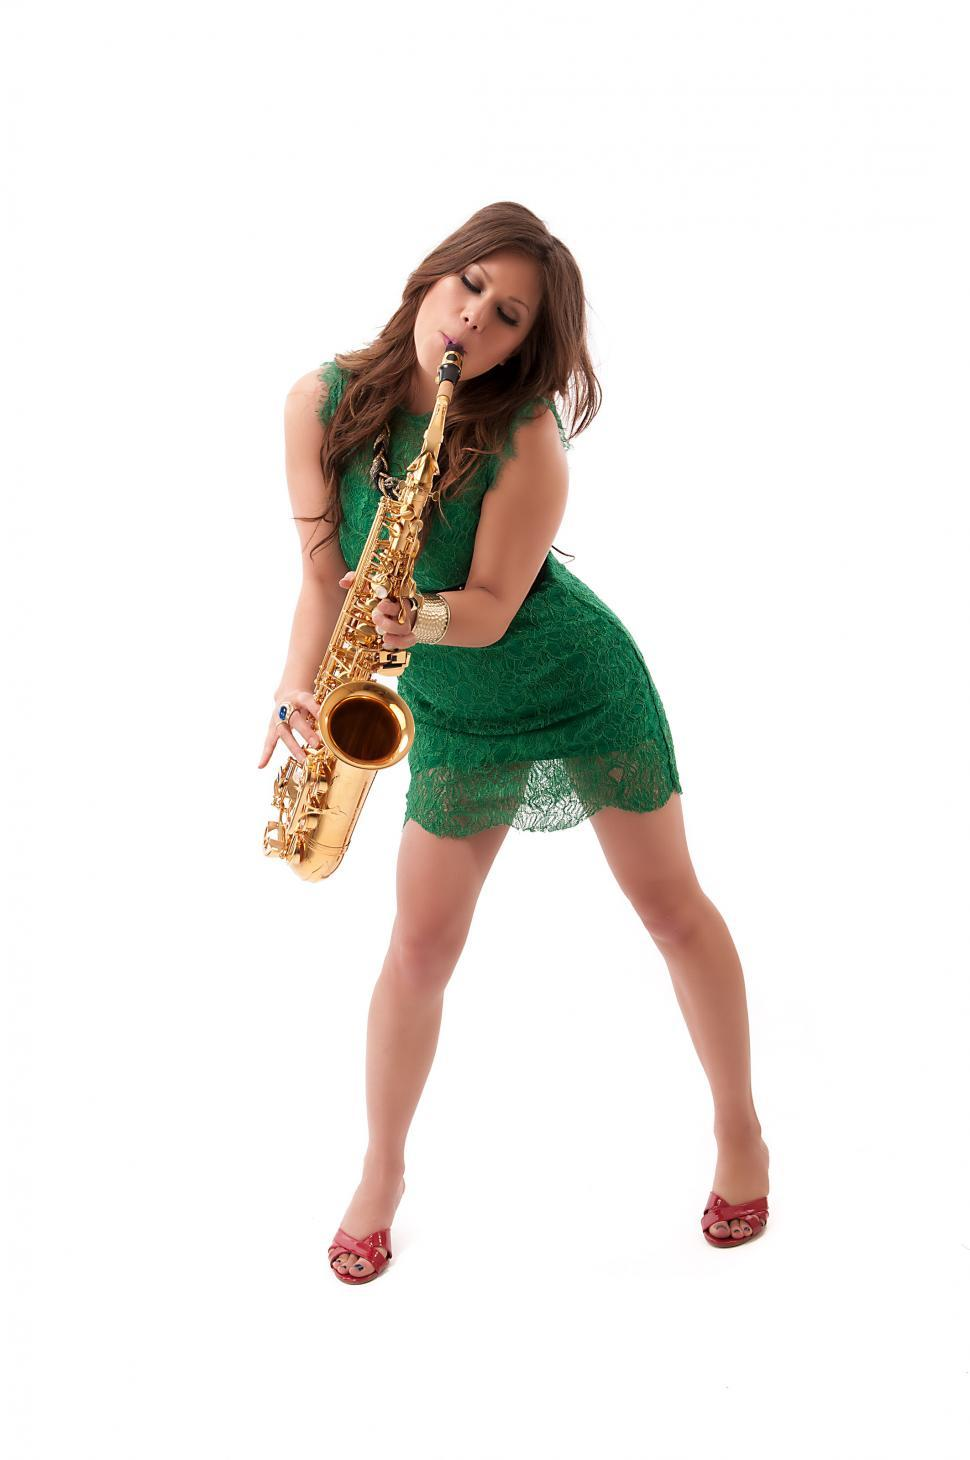 Download Free Stock Photo of Young performer playing the saxophone